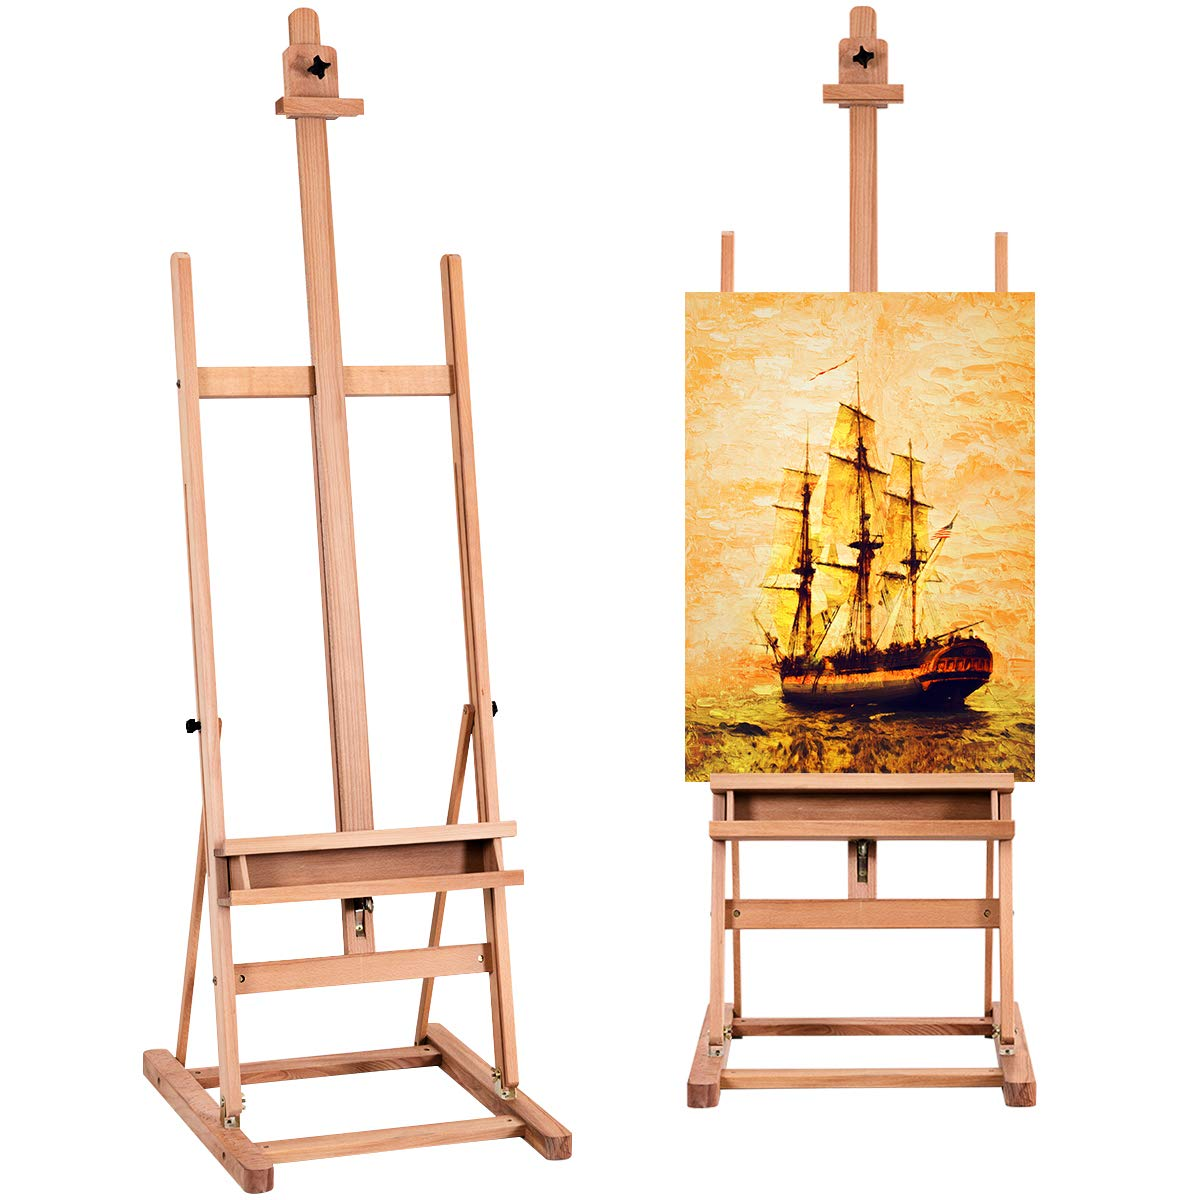 TANGKULA H-Frame Easel Wooden Height and Angle Adjustable Foldable Tilting Floor Studio Artist Easel Painting, Sketching, Display by Tangkula